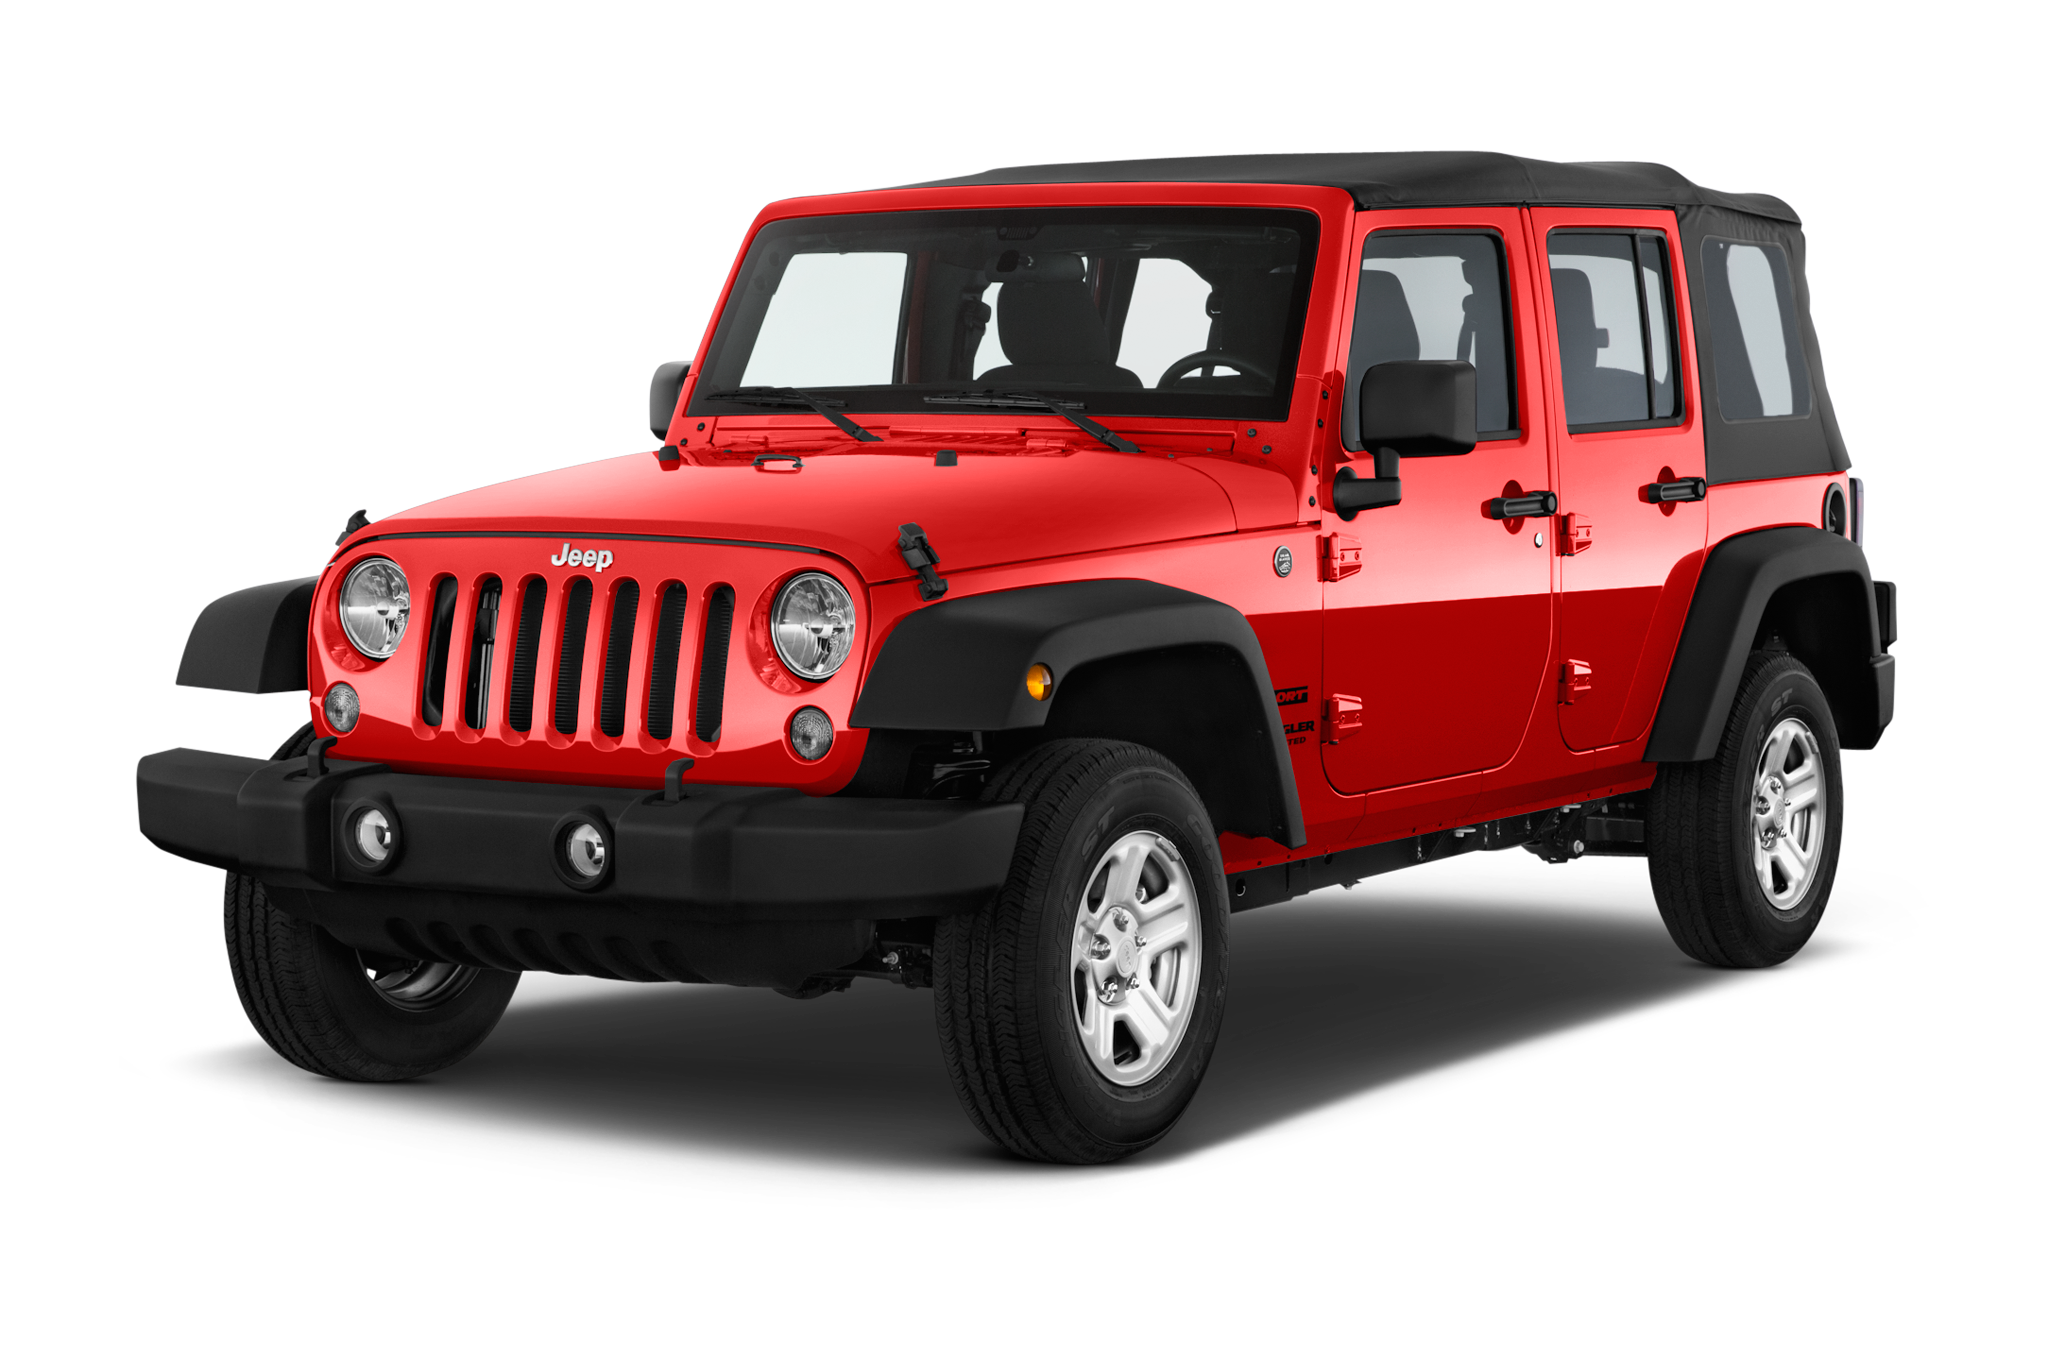 Jeep WRANGLER UNLIMITED Sport RHD 2016 International Price & Overview